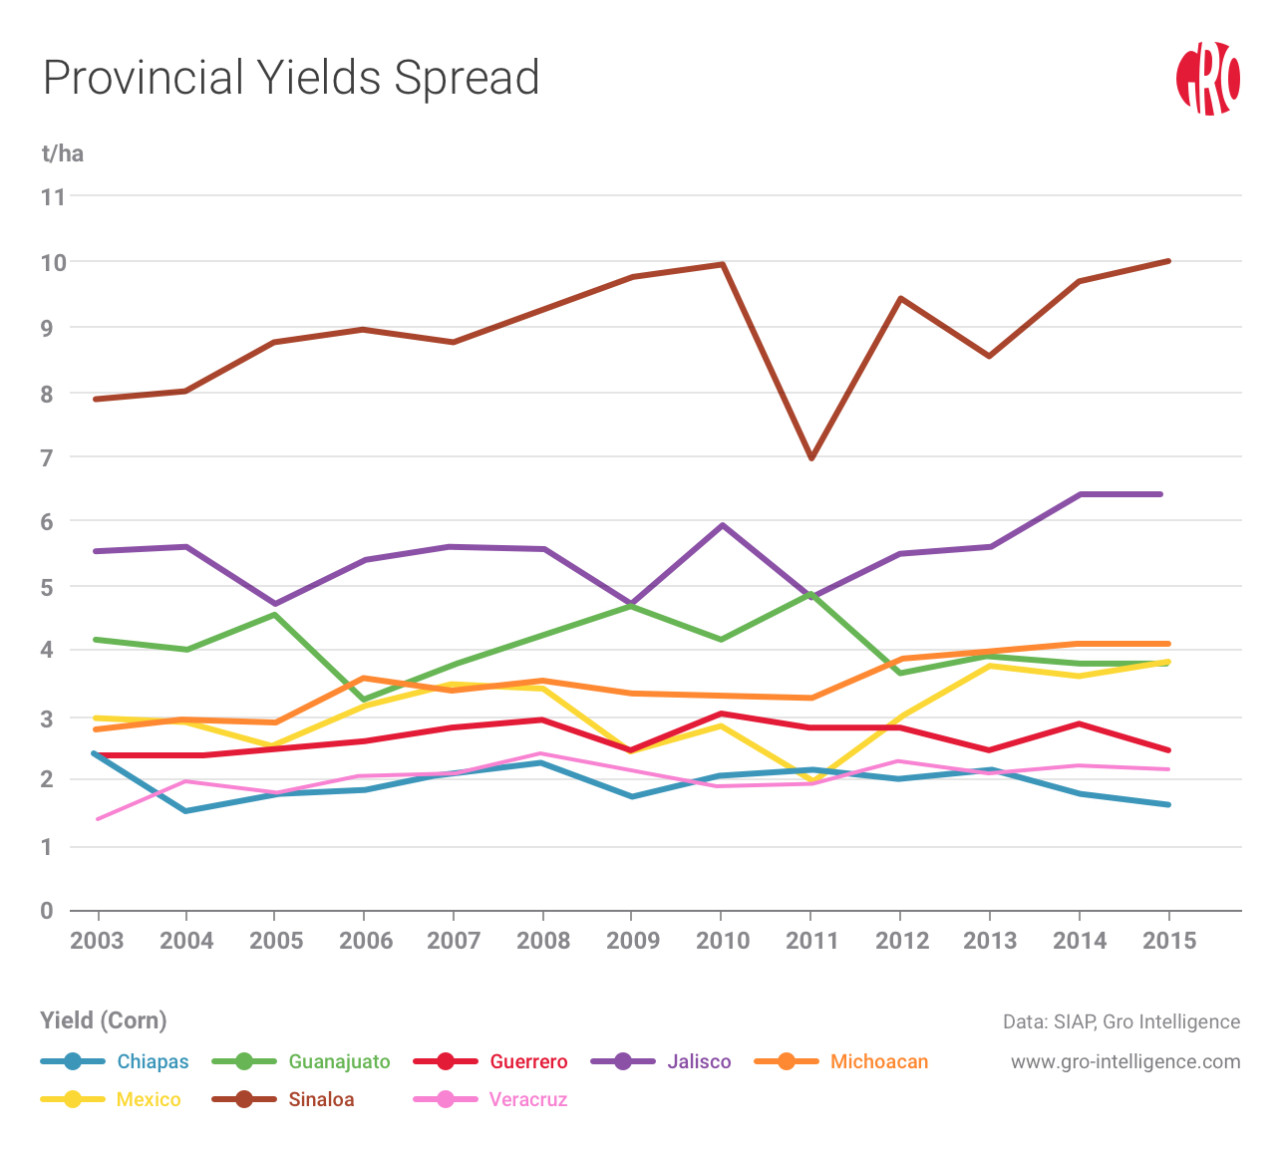 Provincial Yields Spread